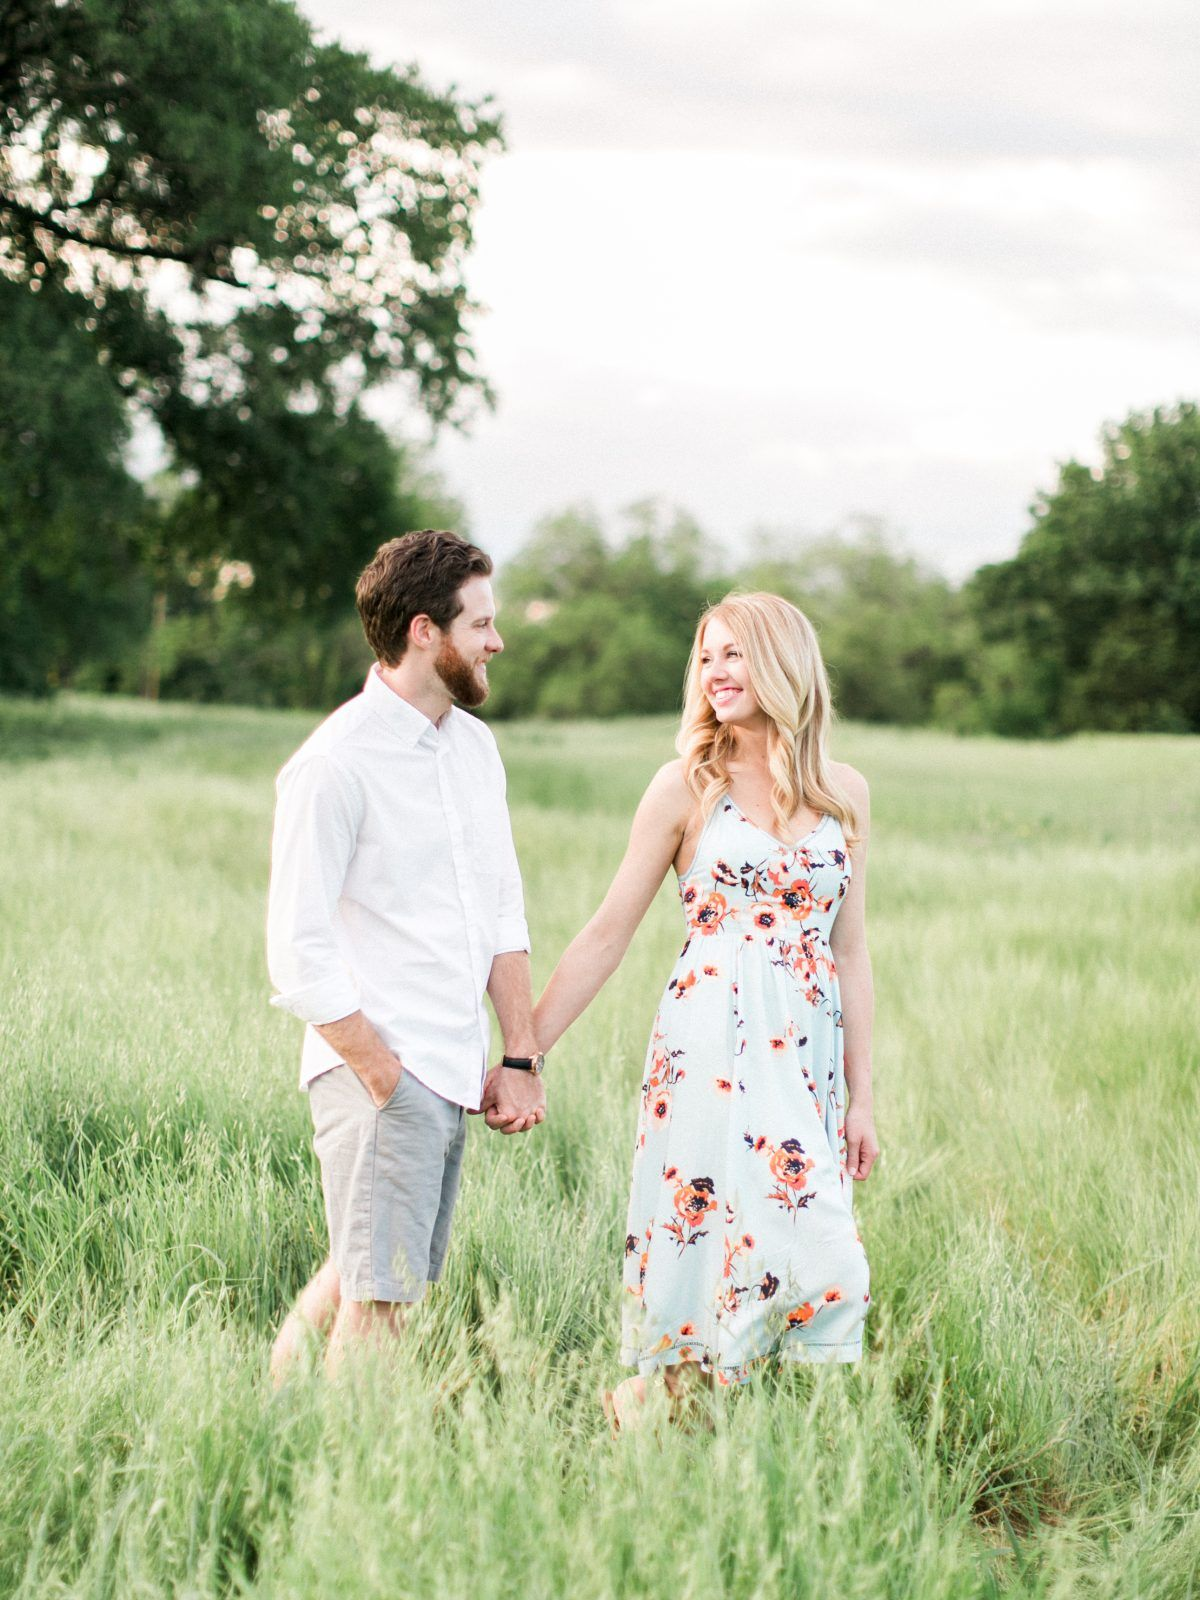 Britni and Stephenu0026#39;s Proposal on HowHeAsked! | Simple Beautiful and Too cute